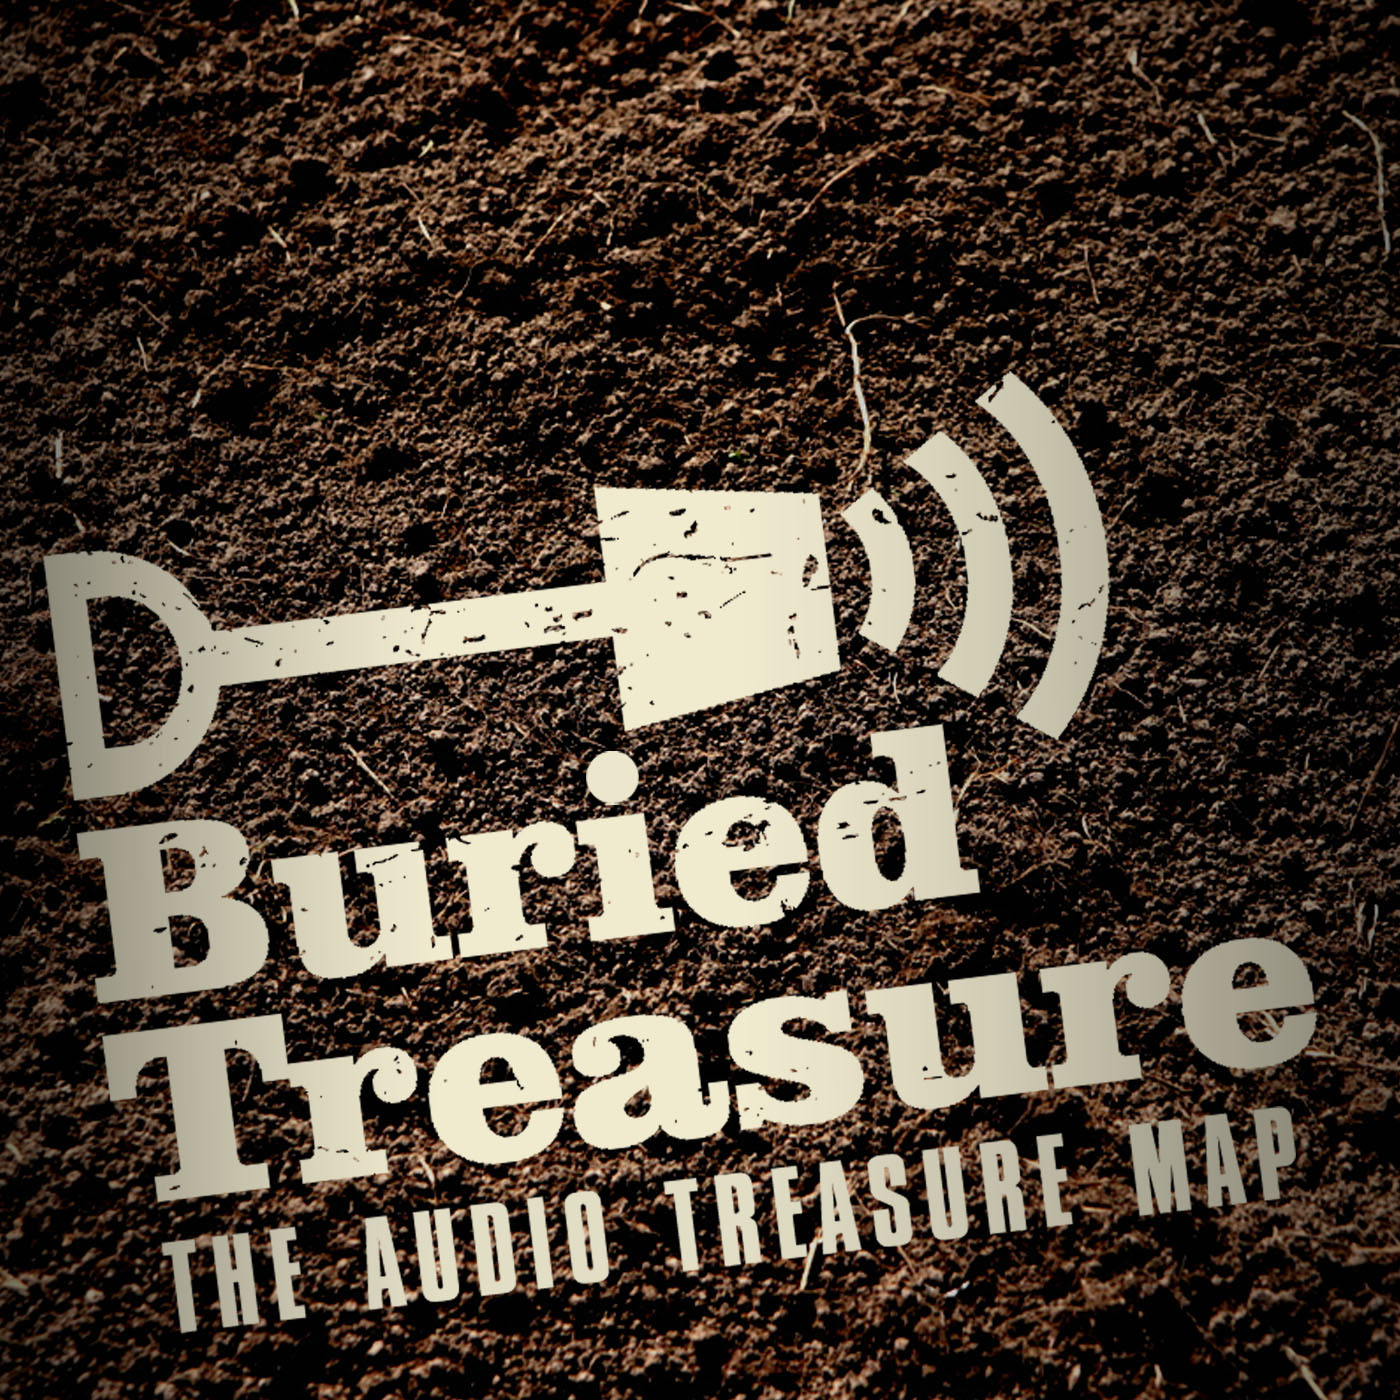 Buried Treasure - The Audio Treasure Map